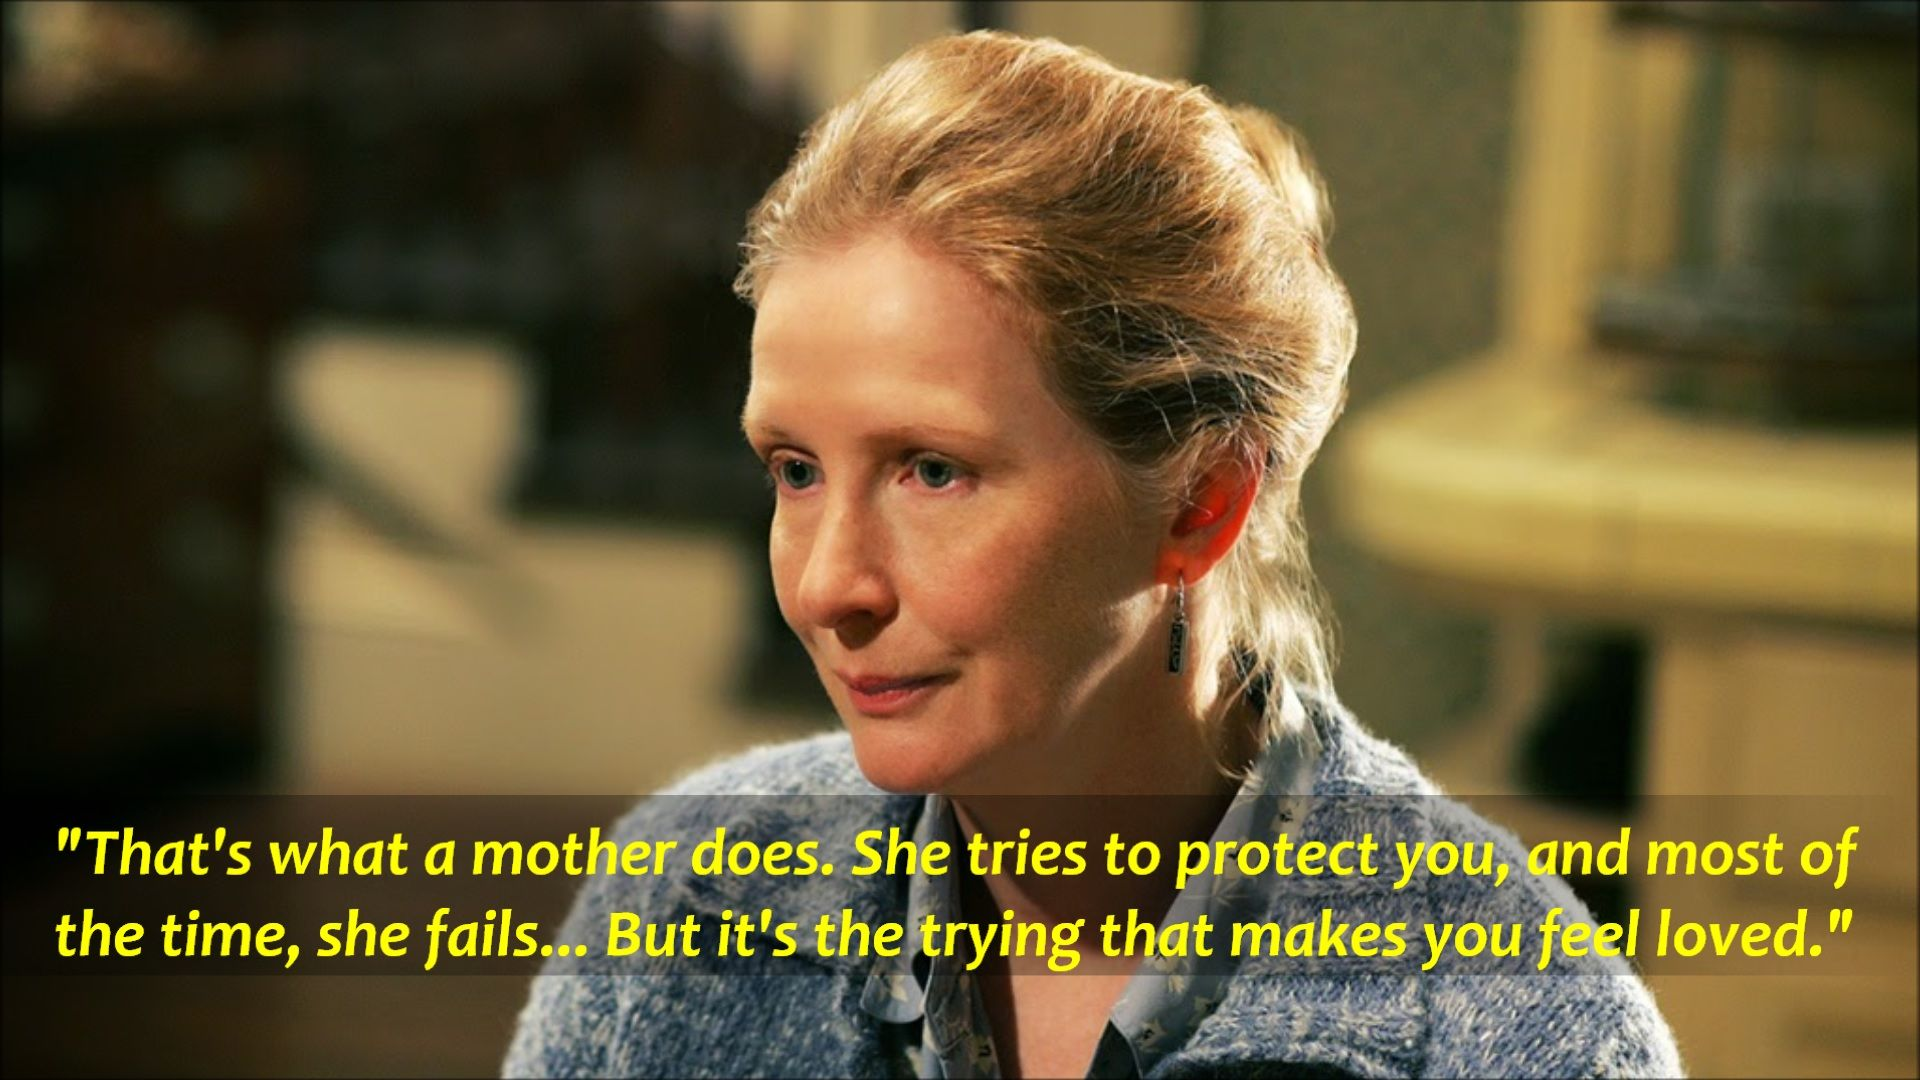 Six feet under s02e13 2002 frances conroy as ruth fisher https